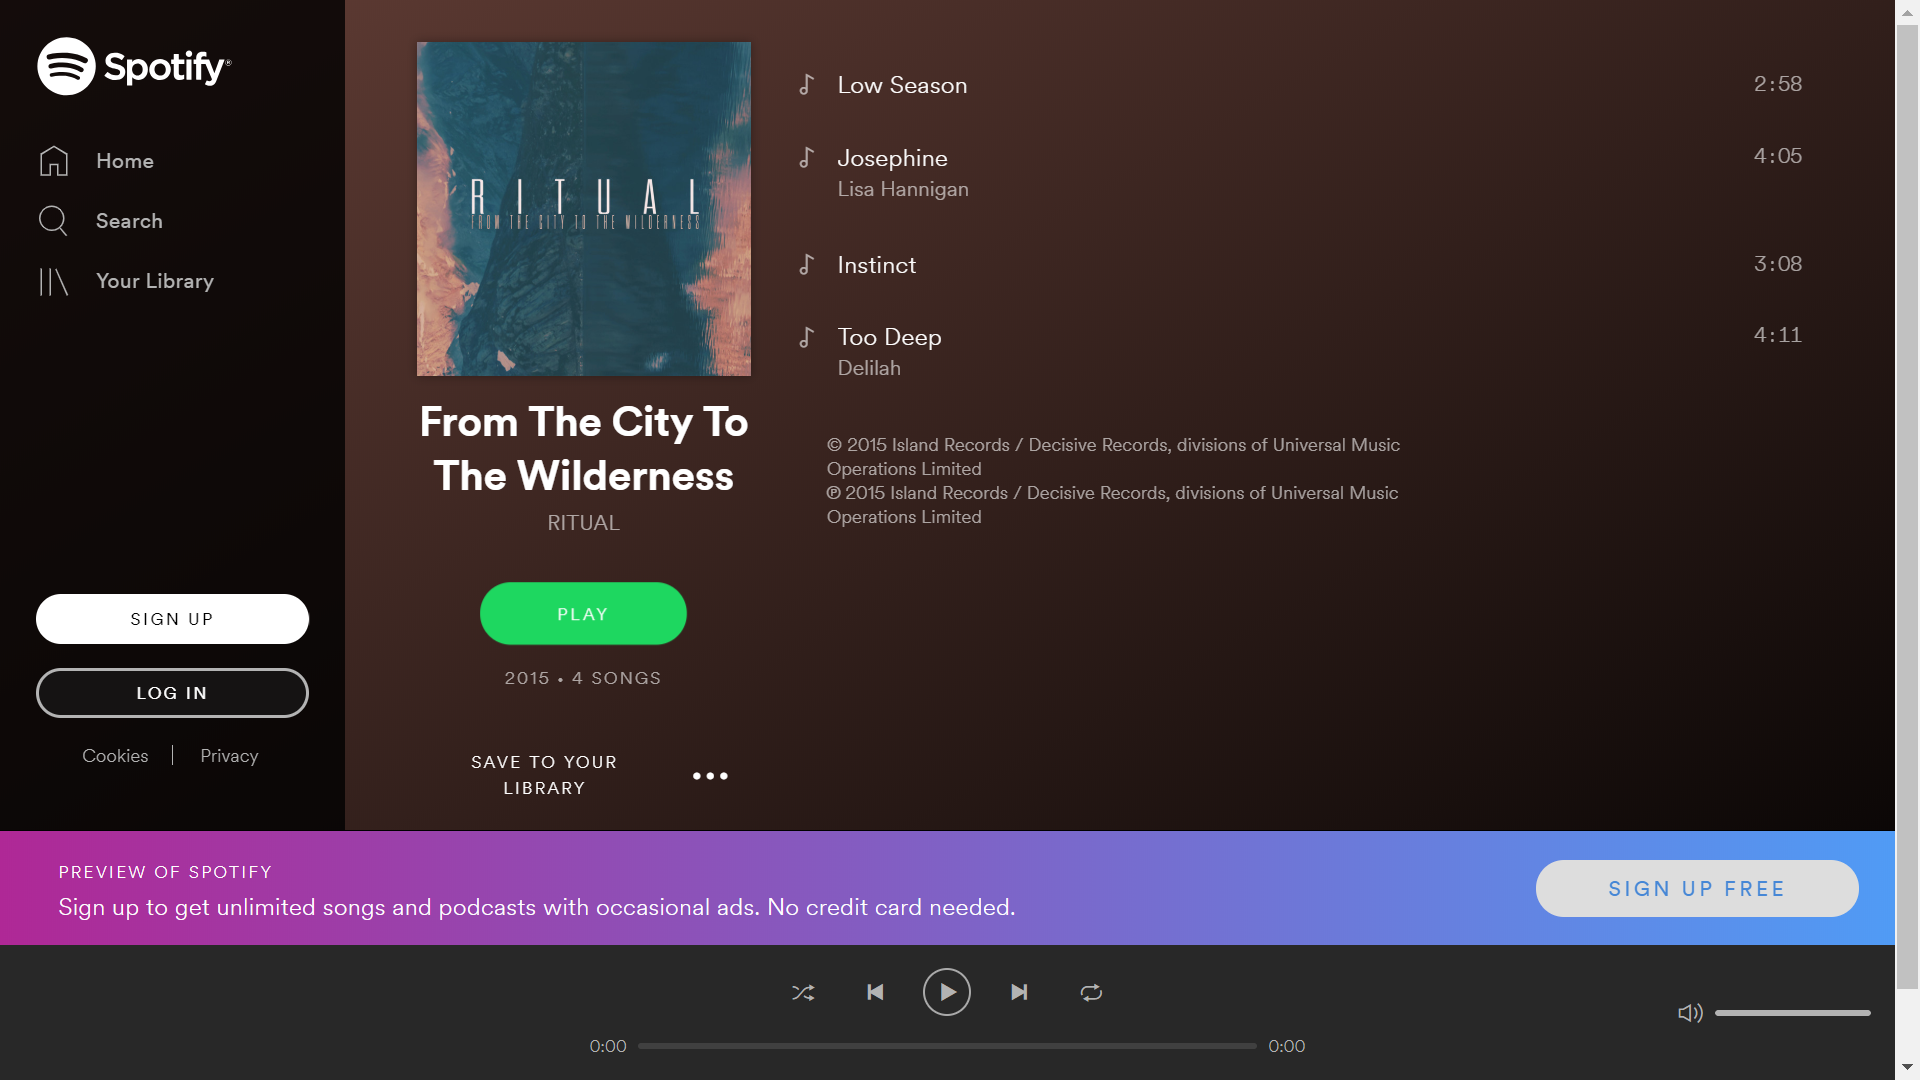 How To Use Spotify Web Player Through a Web Browser | Agatton